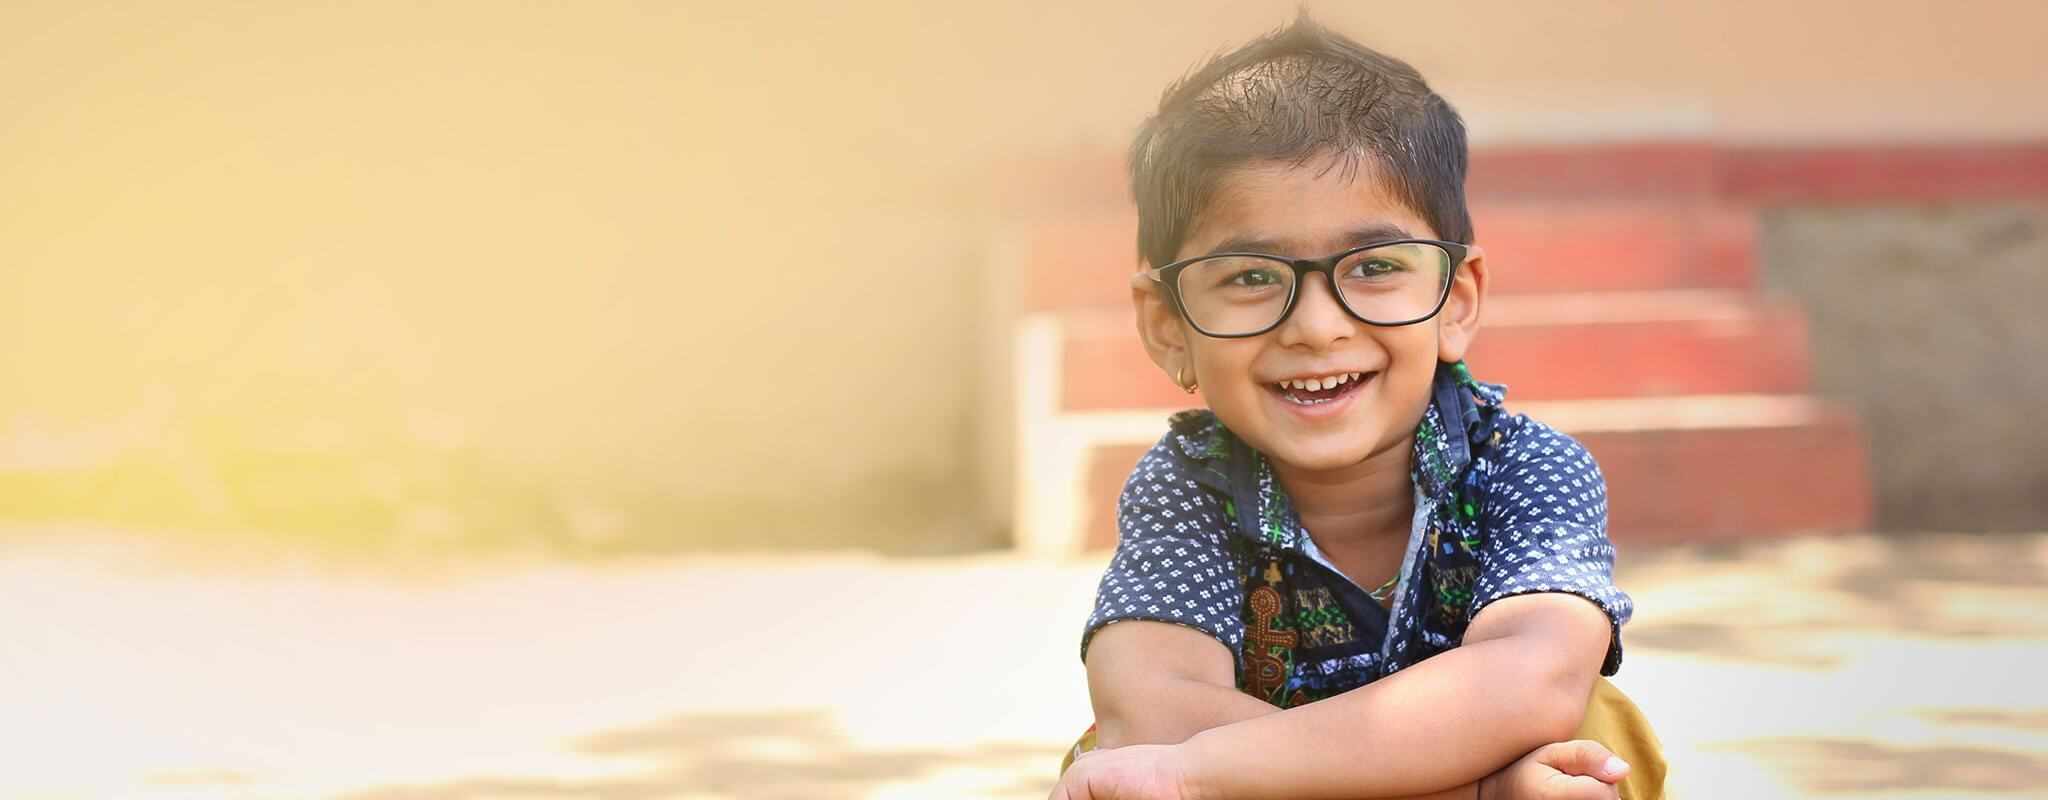 Indian boy wearing glasses Banner image for Gwinnett Pediatrics and Adolescent Medicine, Gwinnett Pediatricians